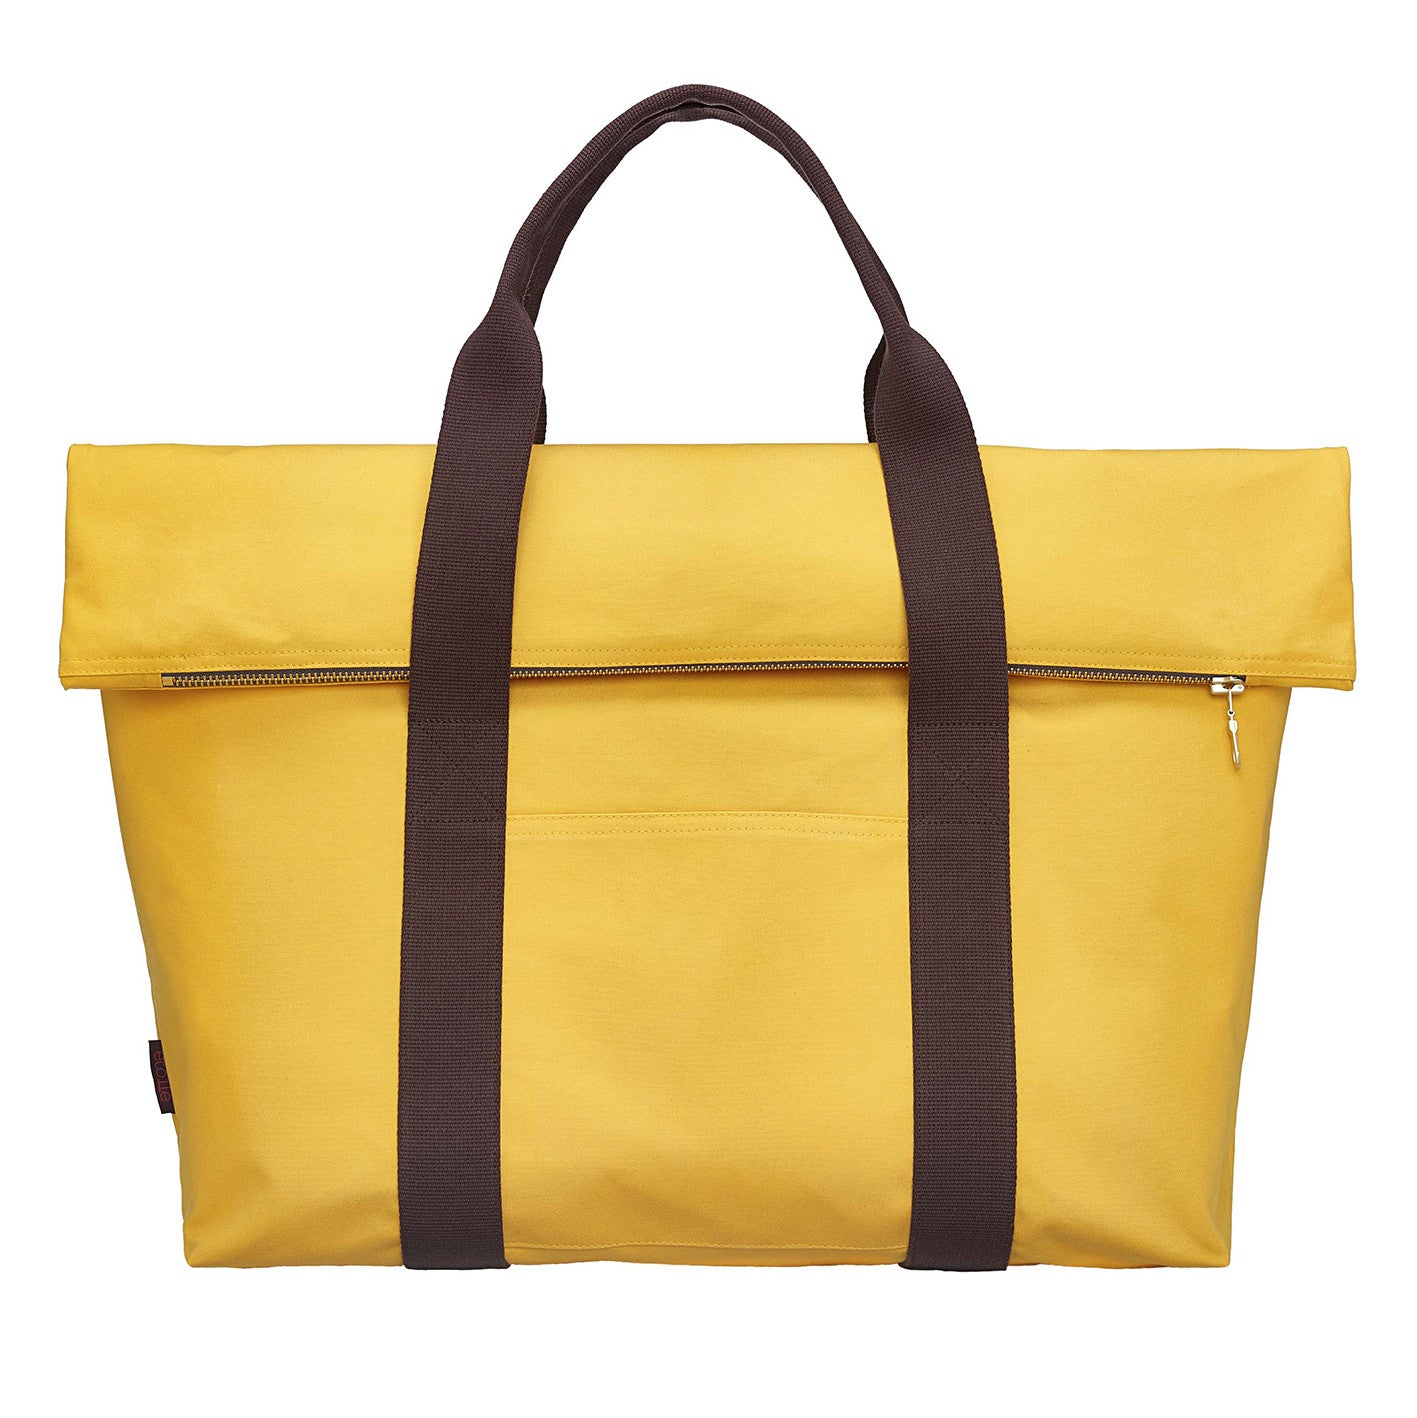 Paula Resin Coated Cotton Canvas Overnight Cabin Bag in Maize Yellow